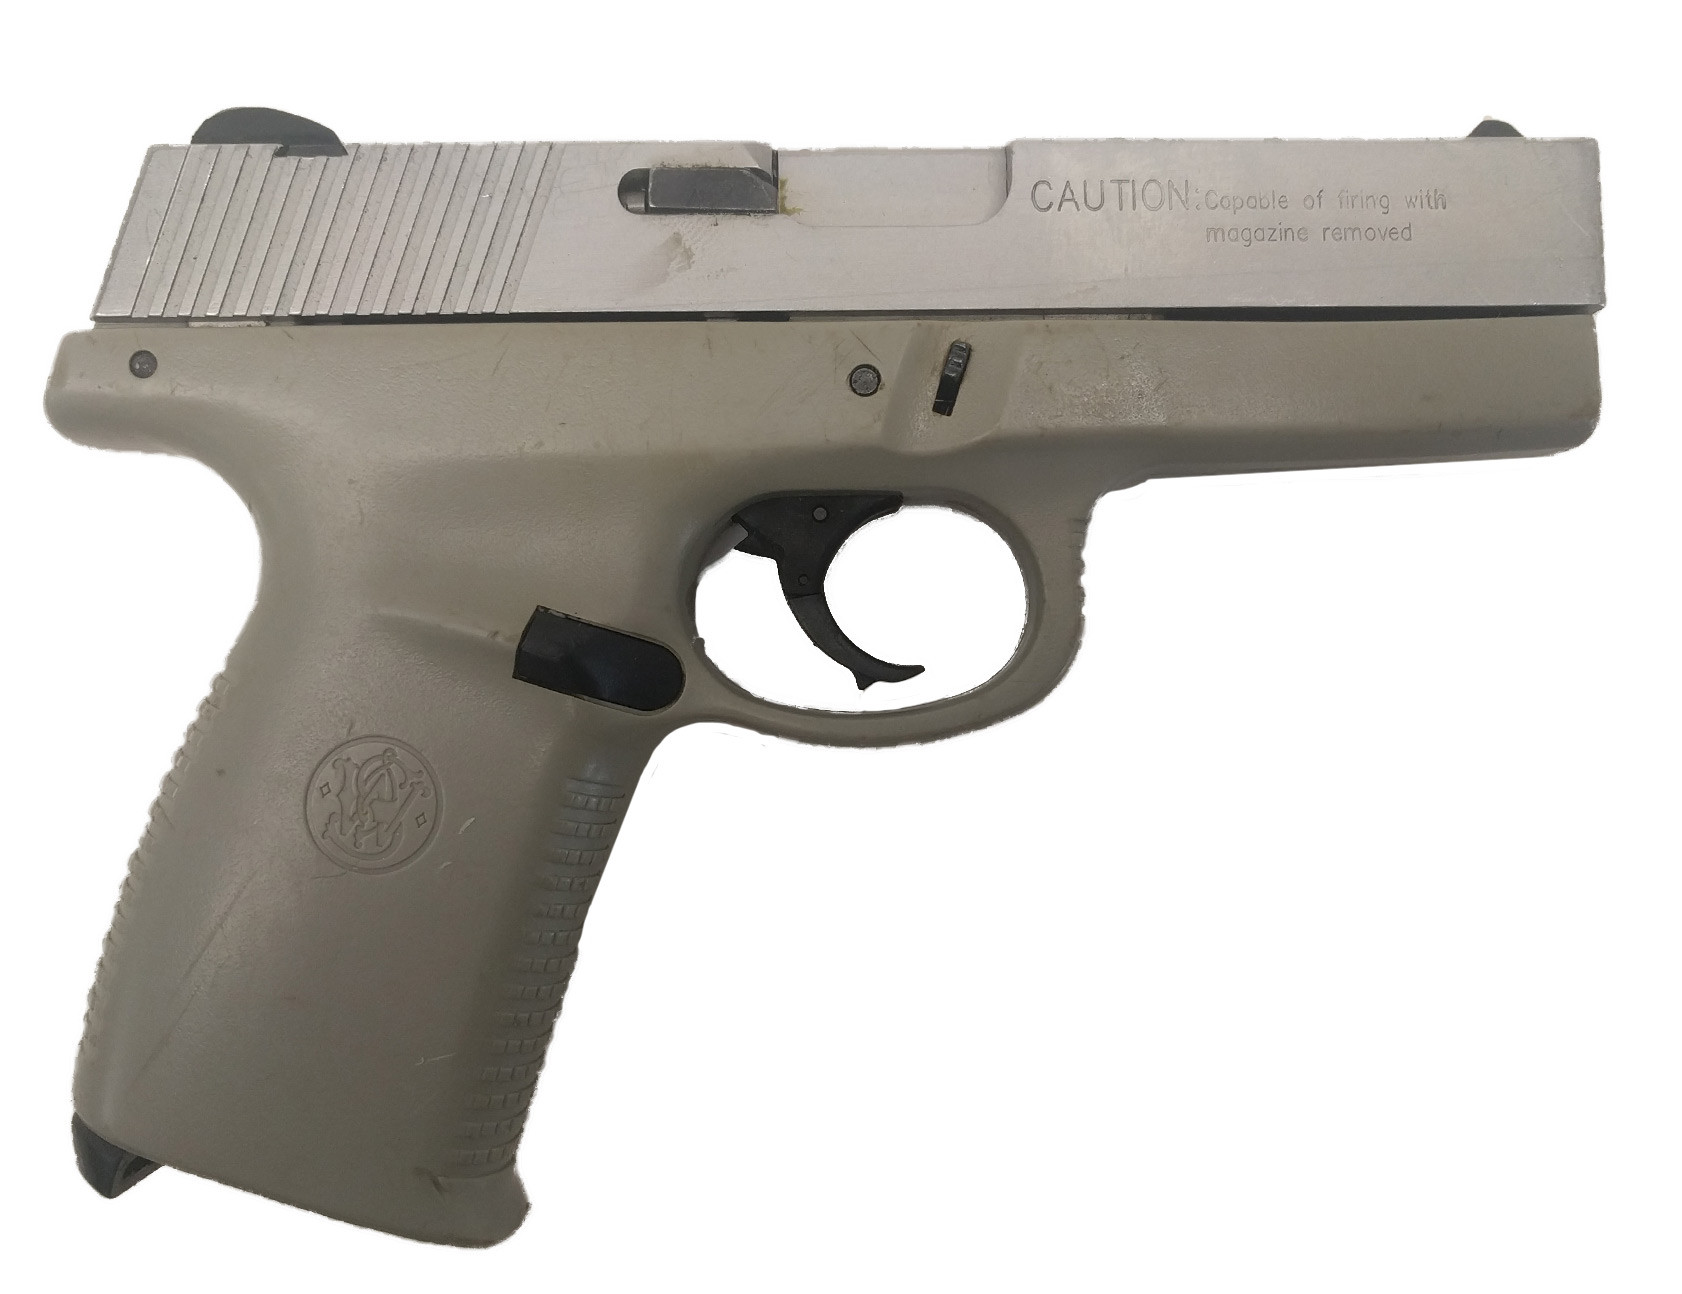 Smith & Wesson SW40V, .40 S&W, Stainless, No Magazine, *Good, Incomplete*